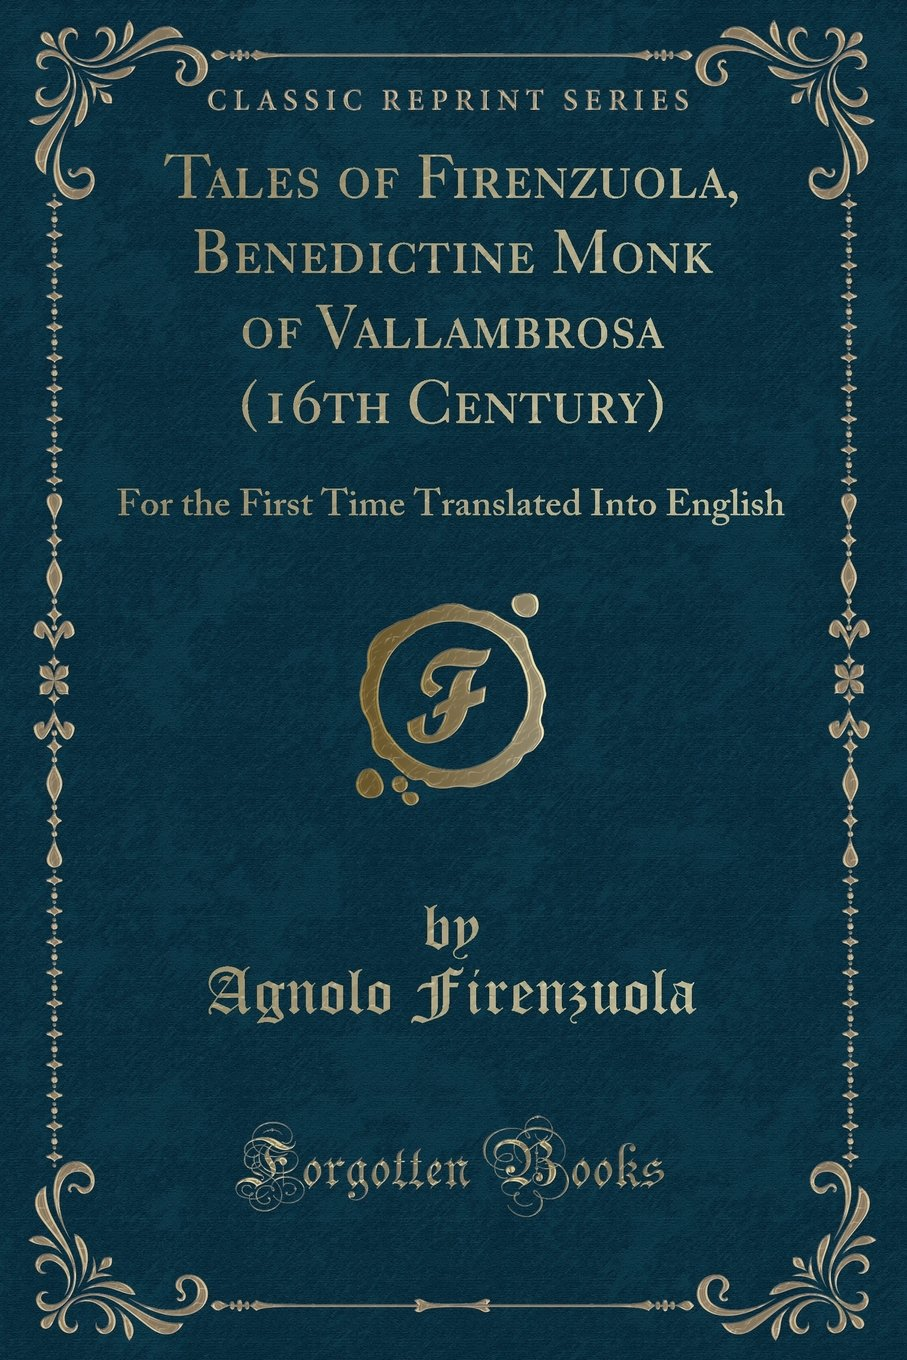 Tales of Firenzuola, Benedictine Monk of Vallambrosa (16th Century): For the First Time Translated Into English (Classic Reprint) PDF